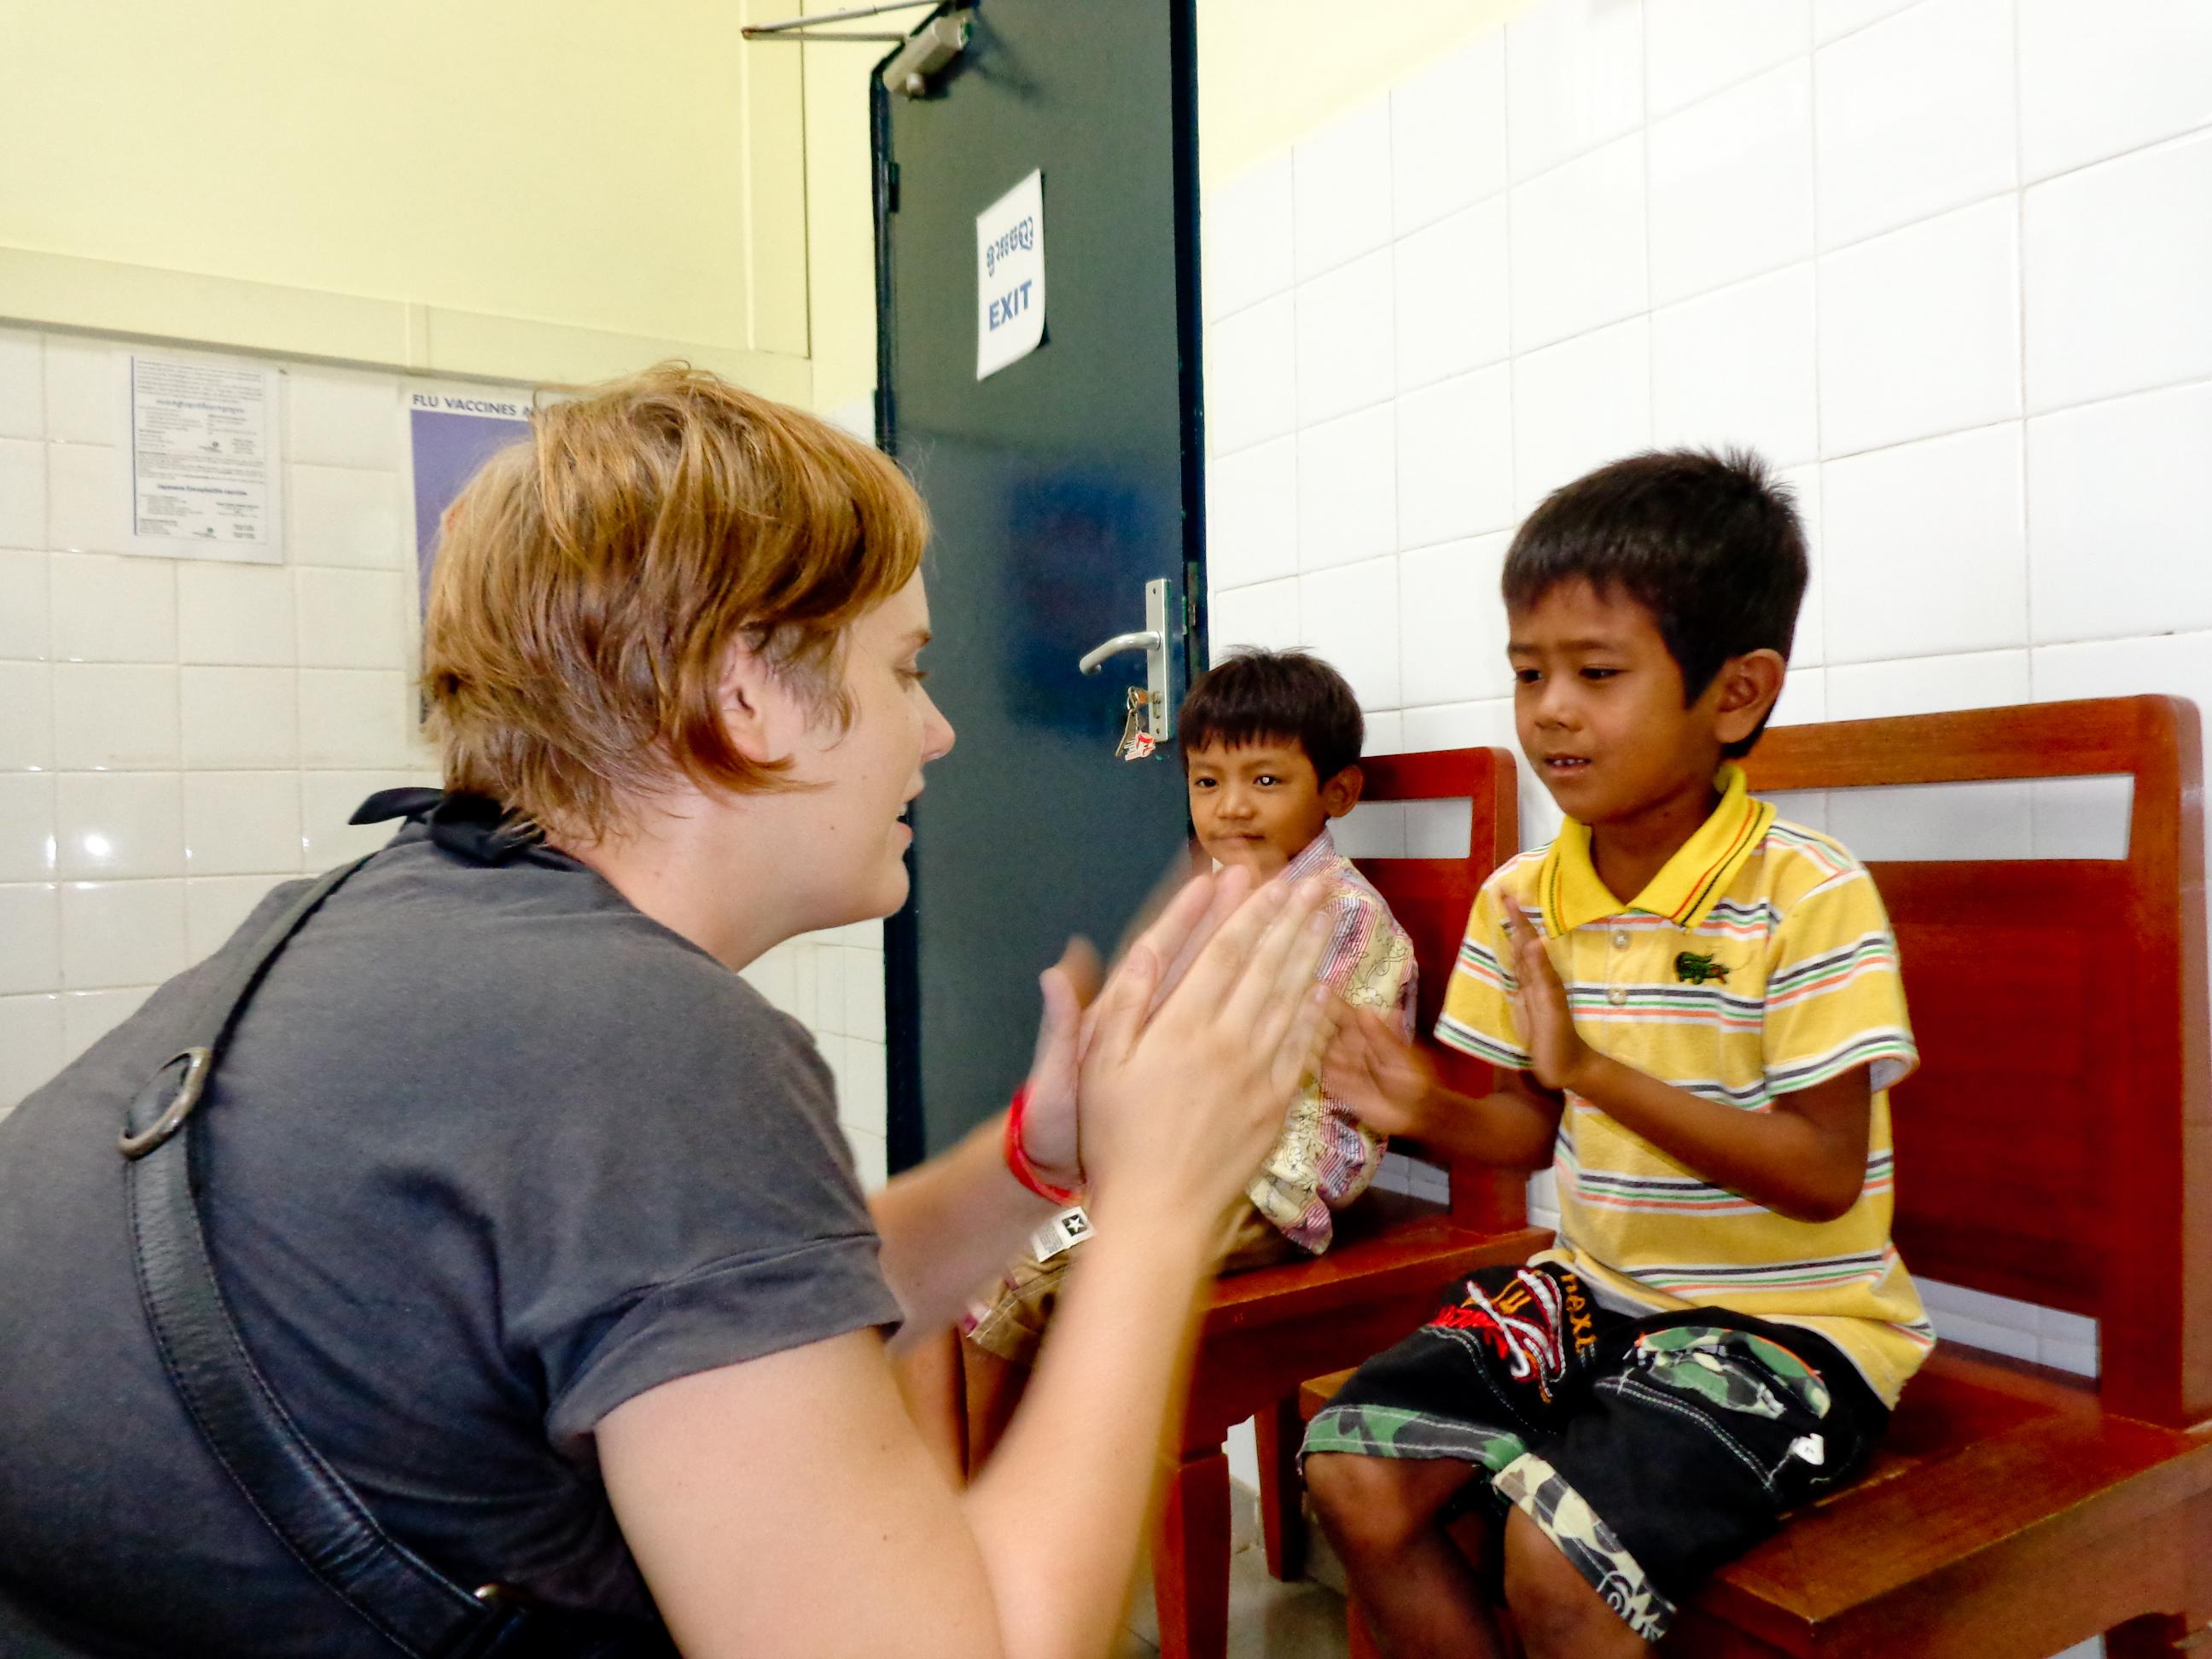 A female intern from projects Abroad can be seen clapping with a child during her occupational therapy internship in Cambodia.